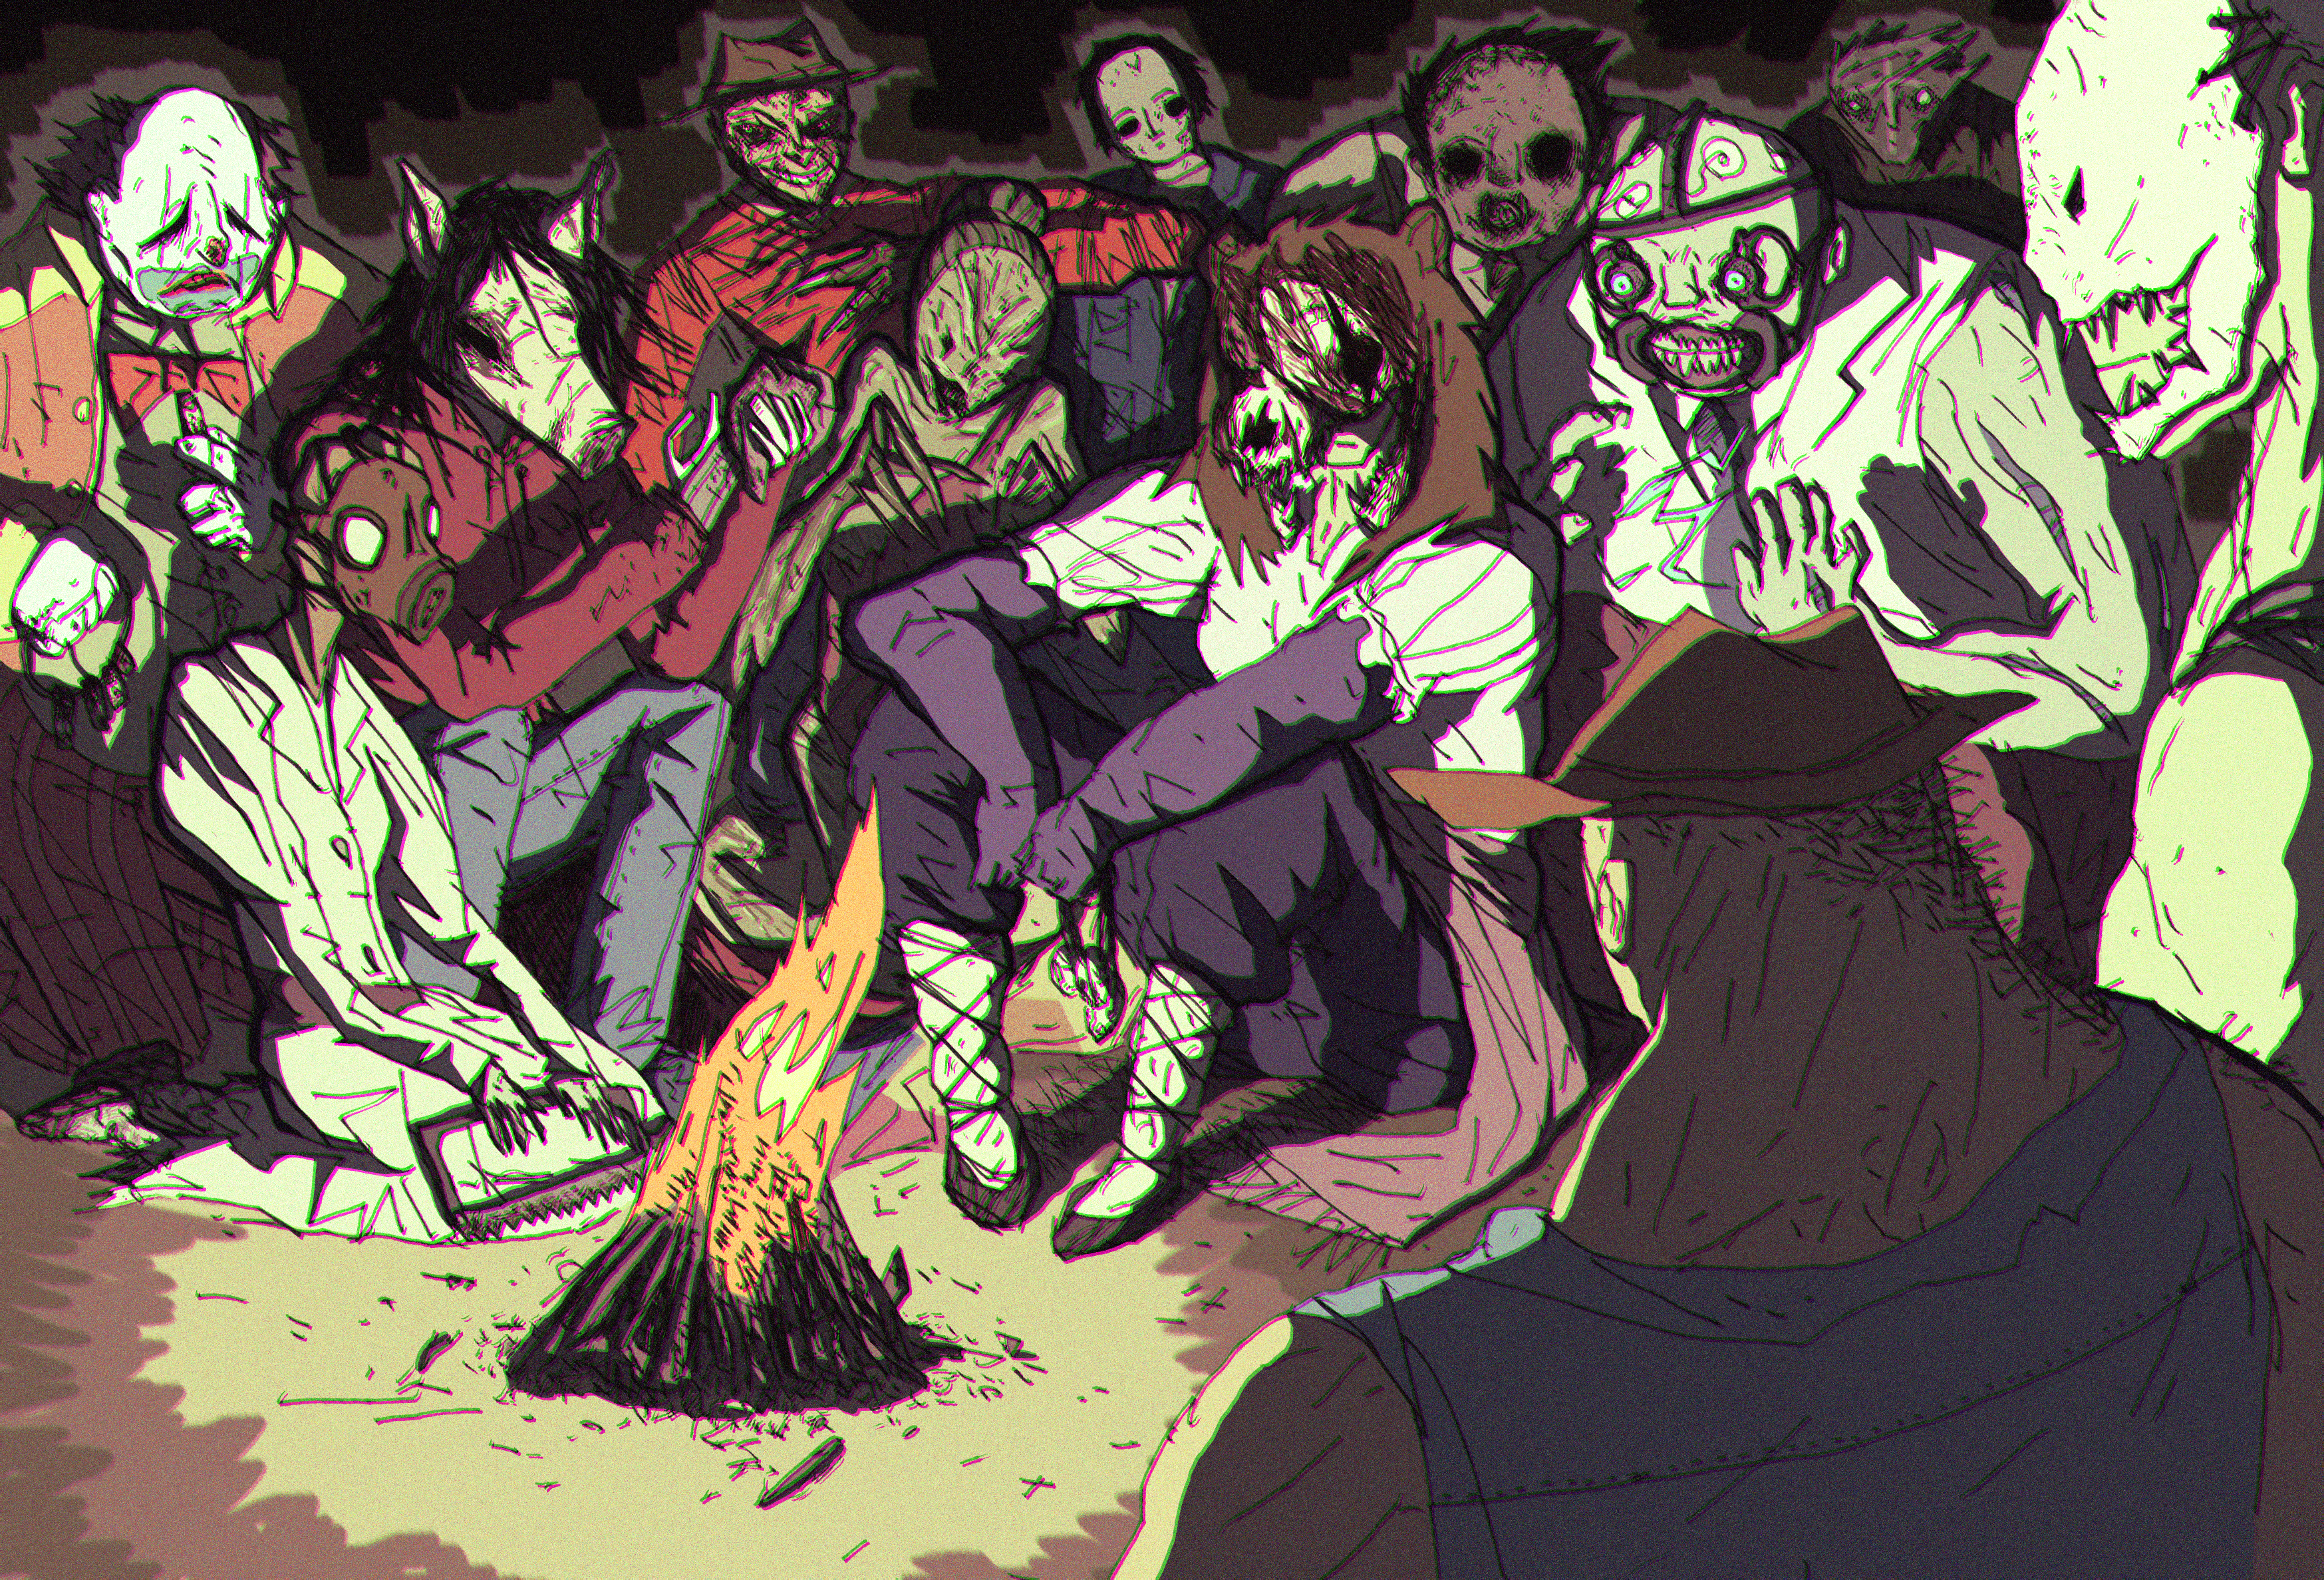 Killer drawing dead by daylight. Where the killers rest